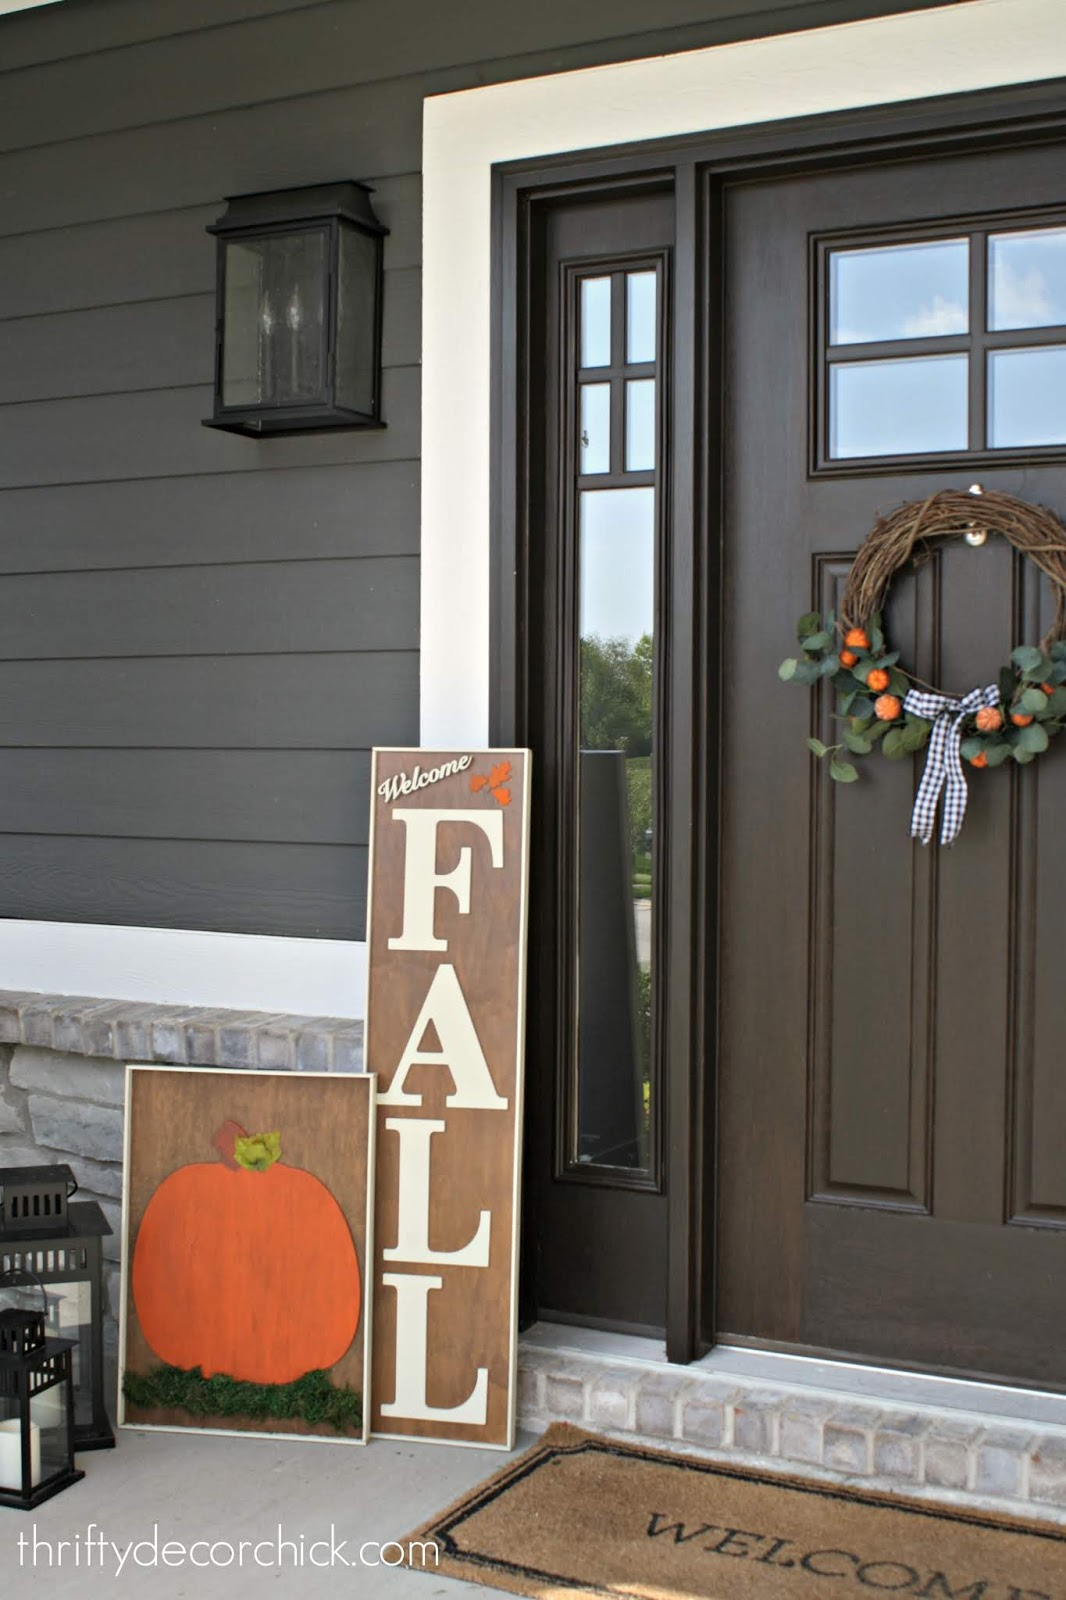 How To Make Large Fall Signs For The Front Porch From